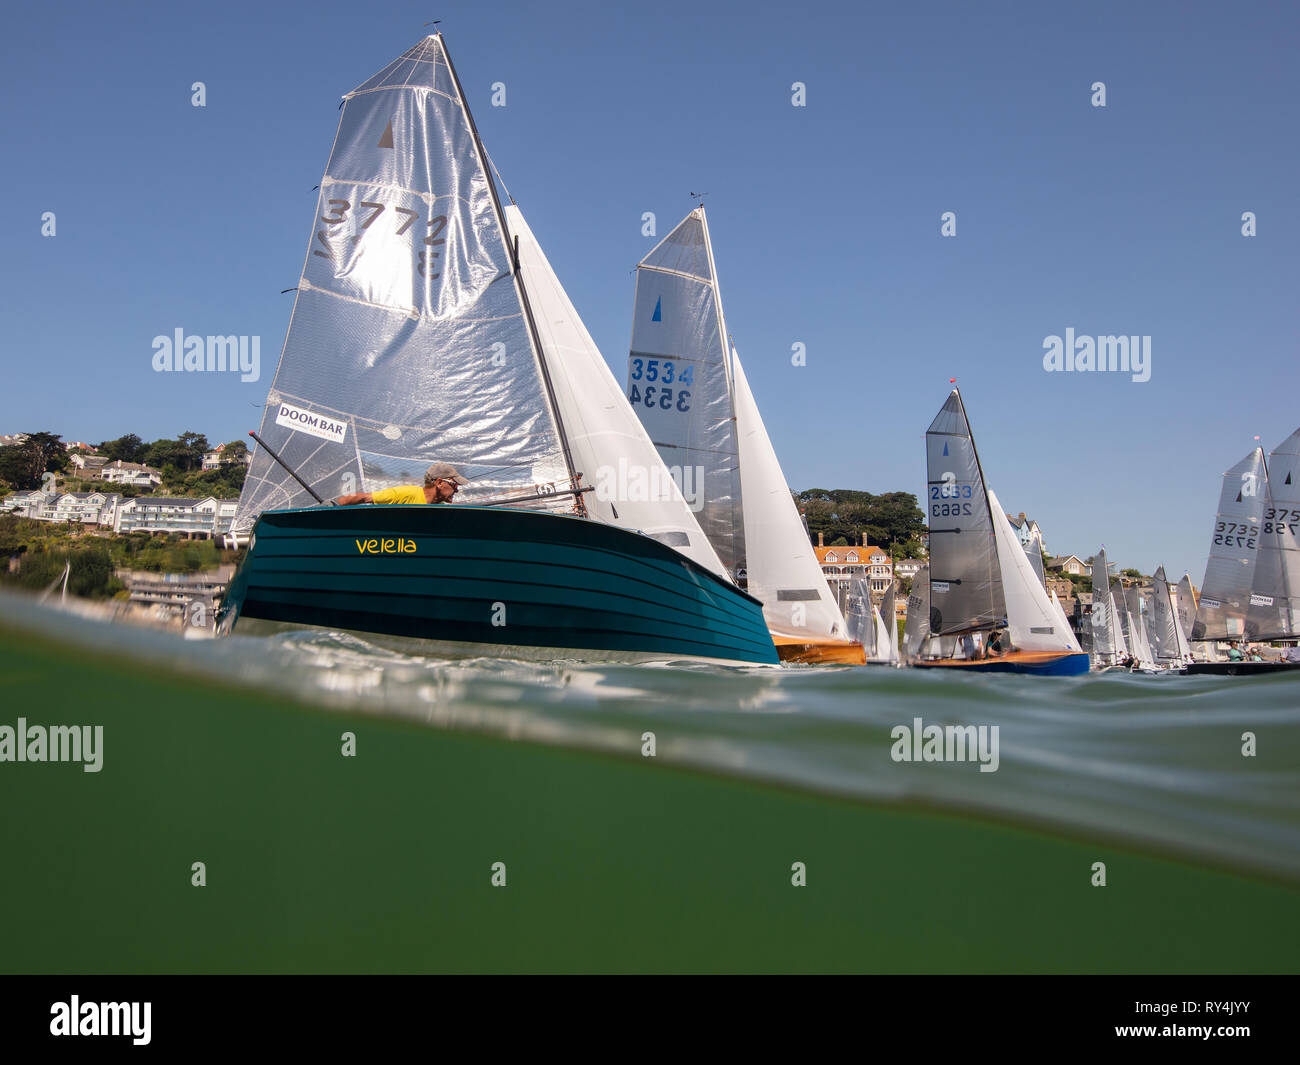 Yachts sailing in Salcombe Town Regatta in the summer. - Stock Image